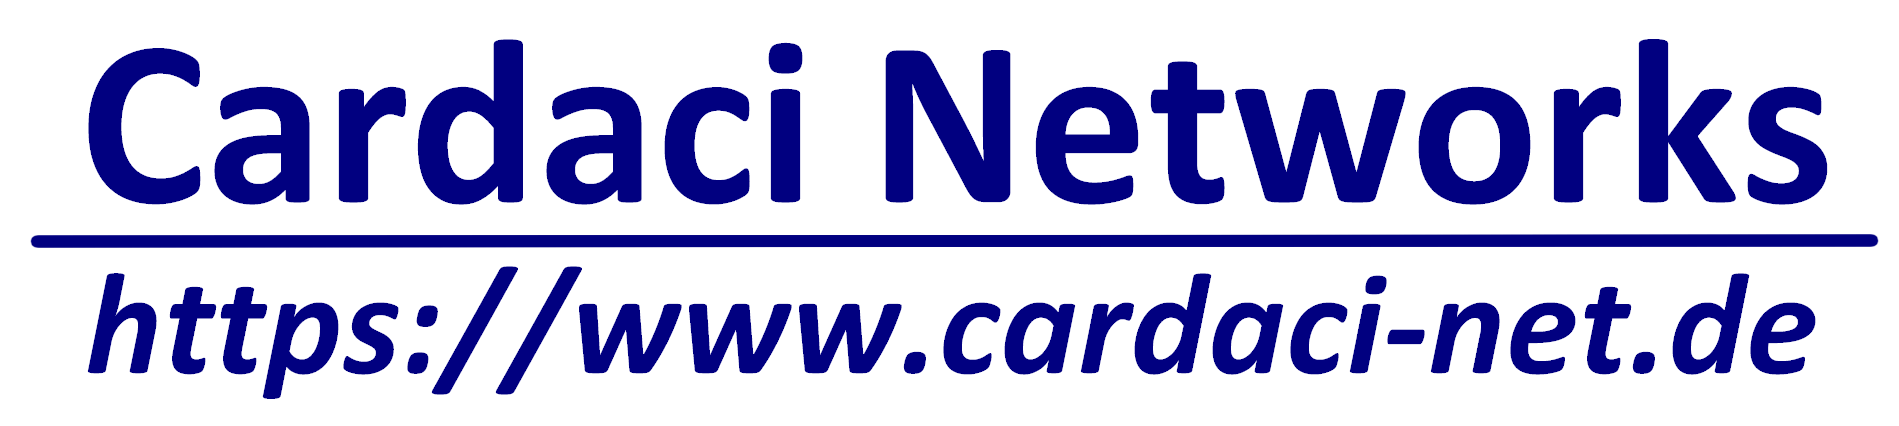 Cardaci Networks